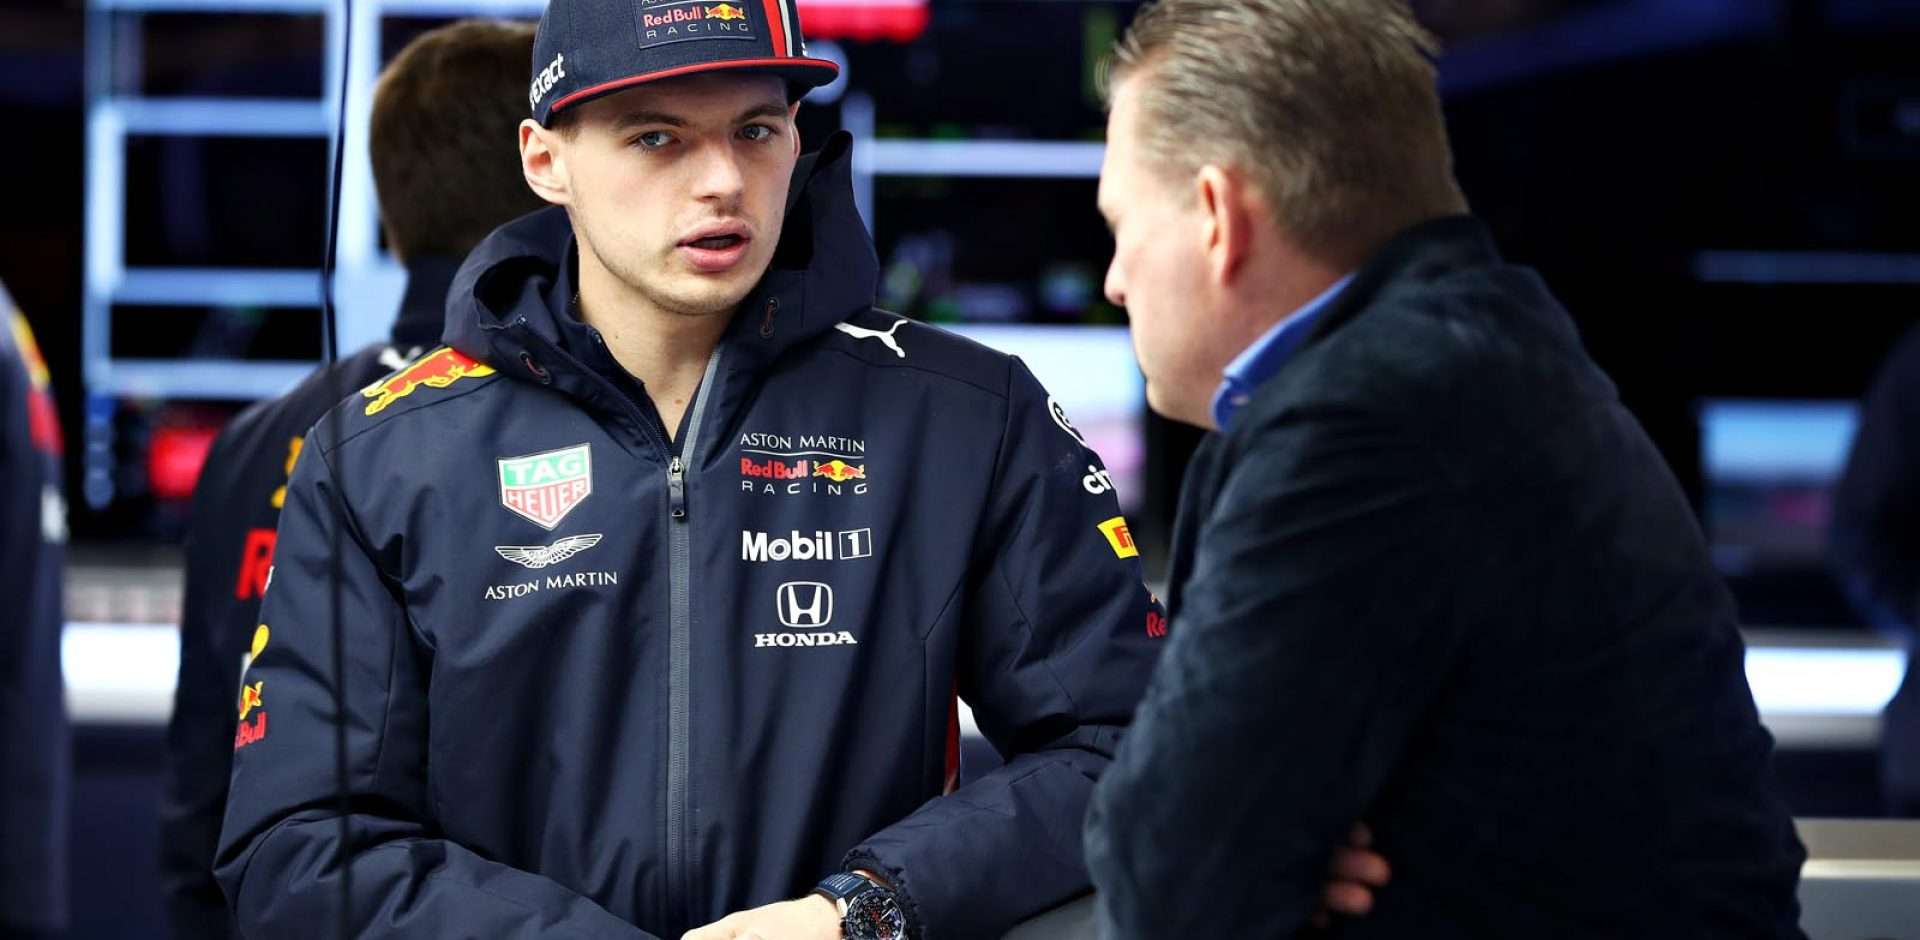 MONTMELO, SPAIN - MARCH 01: Max Verstappen of Netherlands and Red Bull Racing talks with his father Jos Verstappen in the garage during day four of F1 Winter Testing at Circuit de Catalunya on March 01, 2019 in Montmelo, Spain. (Photo by Mark Thompson/Getty Images) // Getty Images / Red Bull Content Pool  // AP-1YK8SDFRN2111 // Usage for editorial use only // Please go to www.redbullcontentpool.com for further information. //